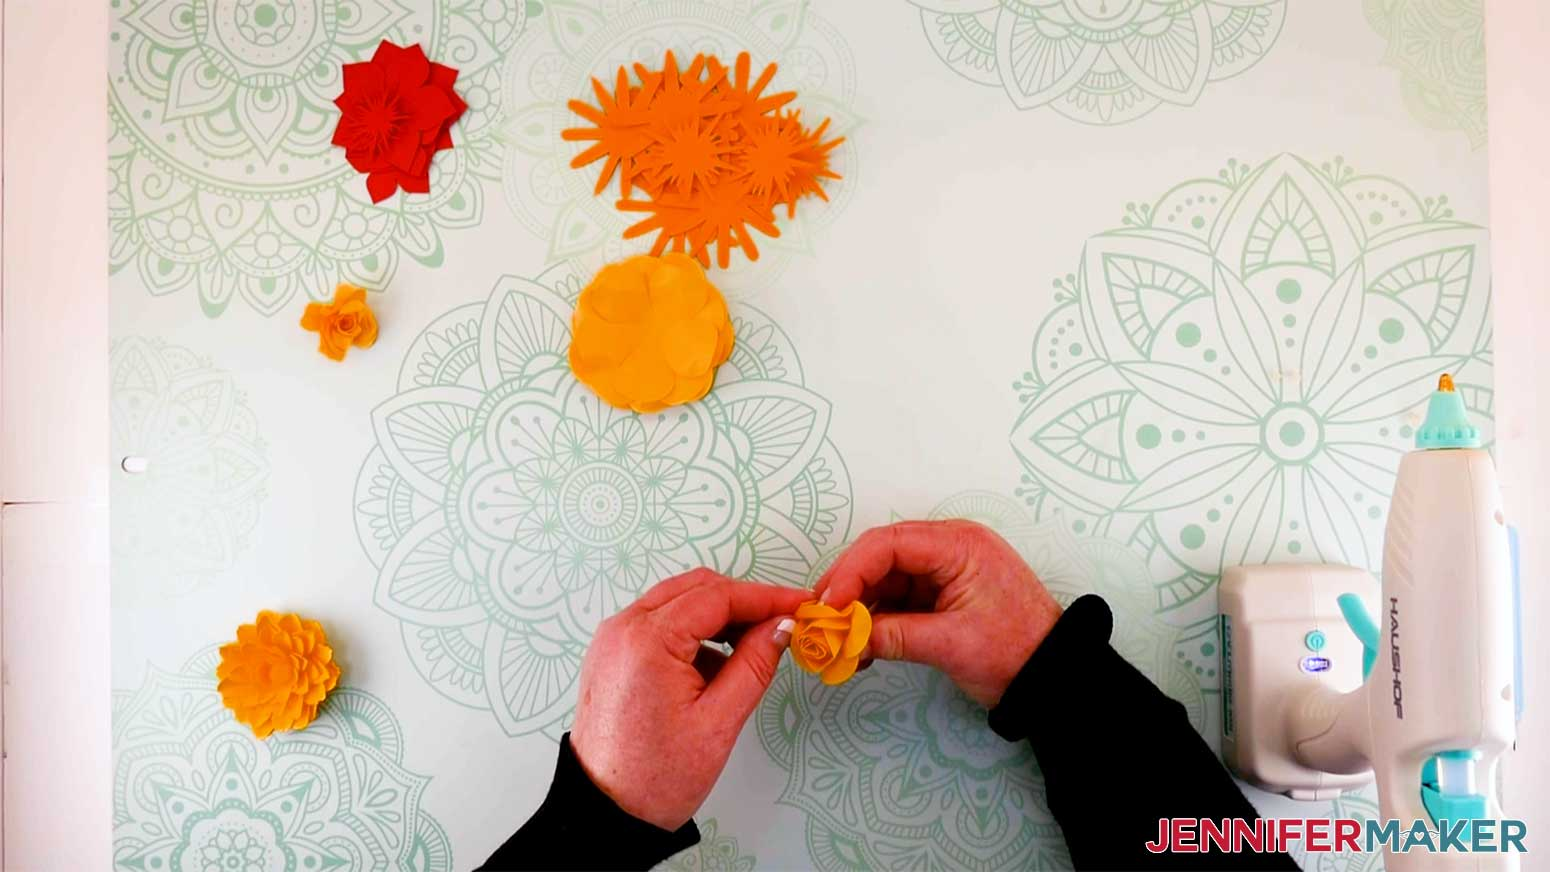 shaping the center of the paper flower before gluing in place for my paper flower letter